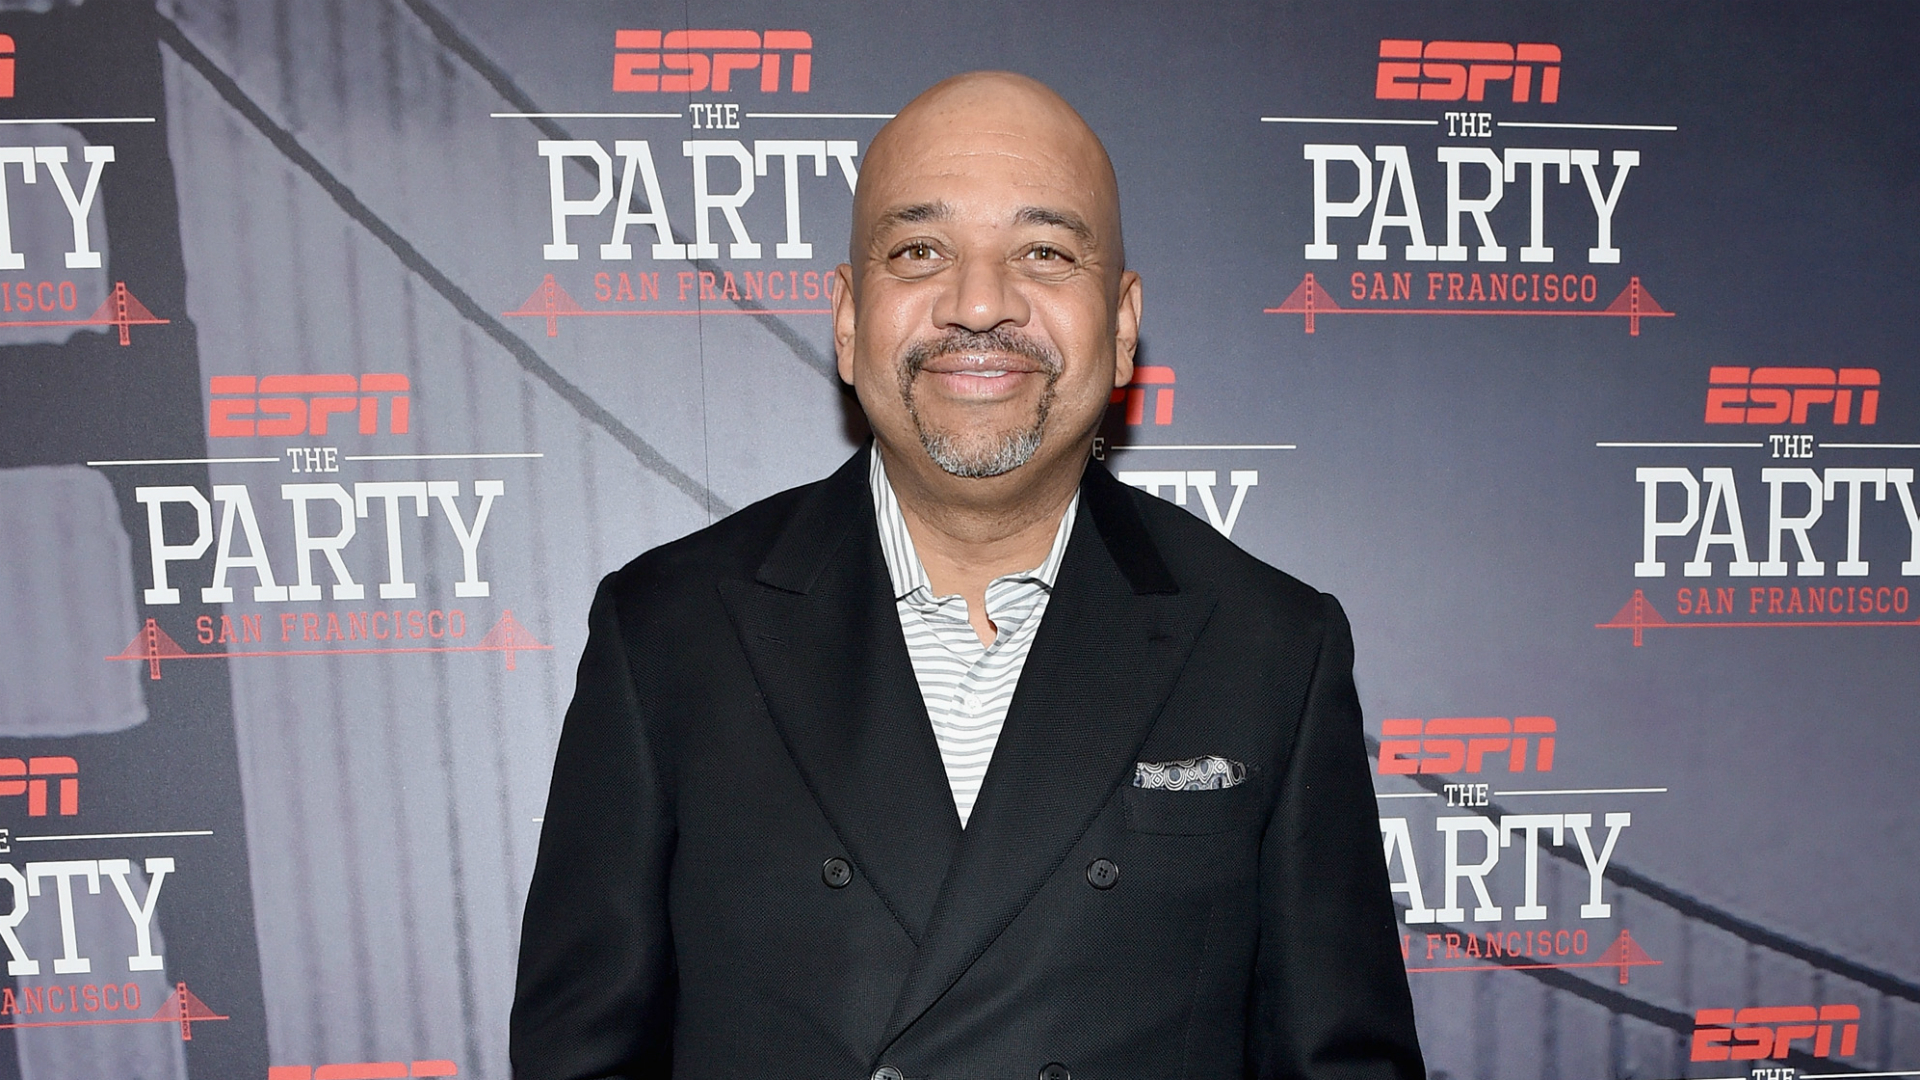 Michael Wilbon apologizes for 'dead wrong' report on Isiah Thomas and the 'Dream Team'